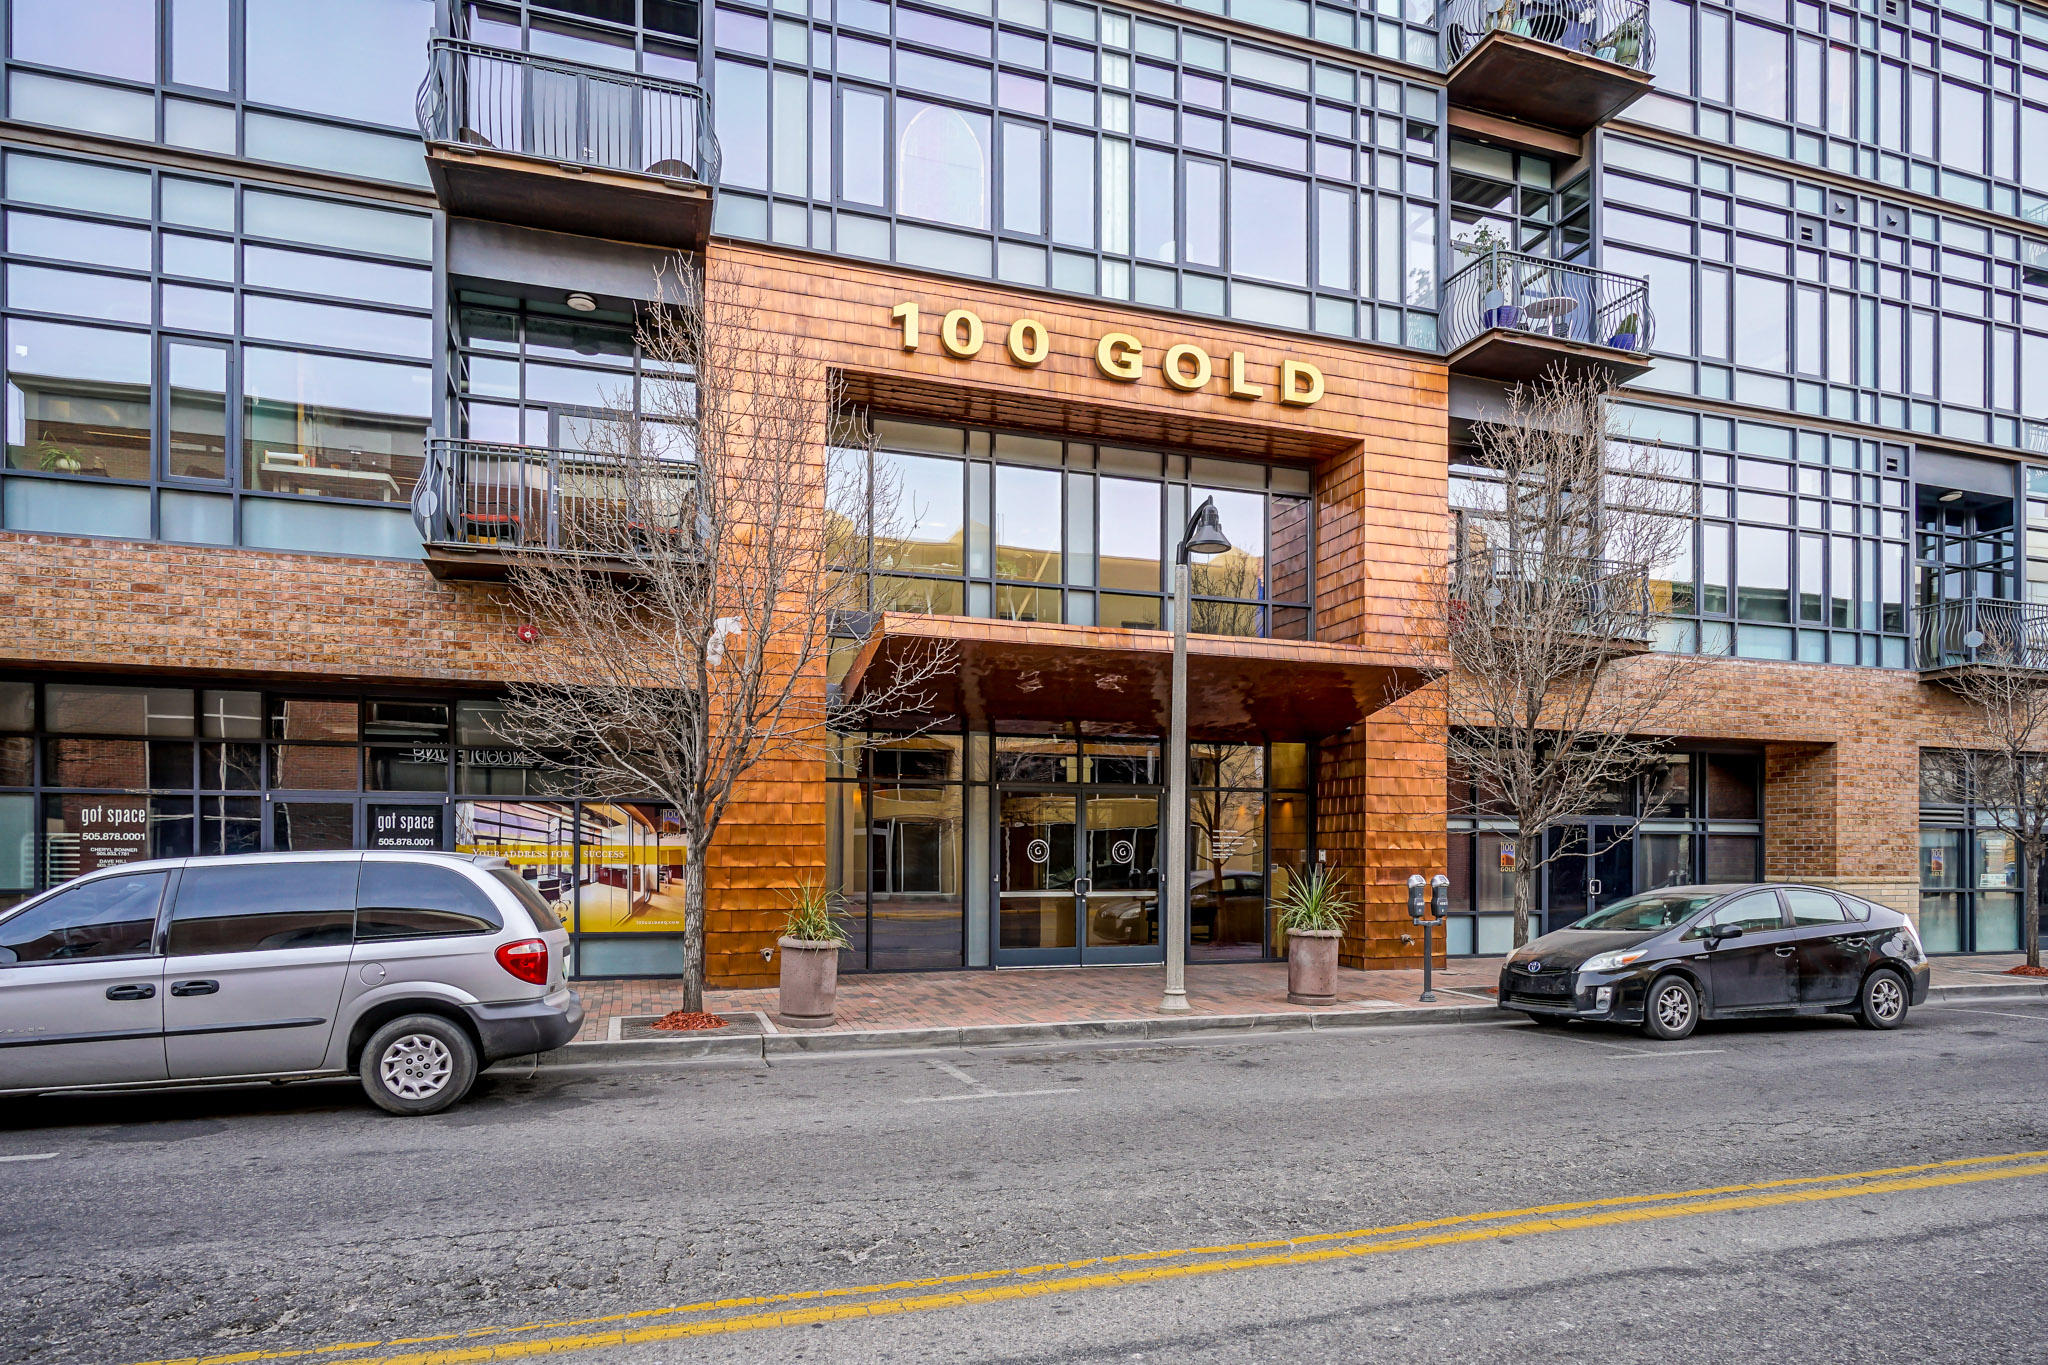 A sought after top floor corner unit at The Lofts At 100 Gold is now available. This stunning corner penthouse unit is warm and inviting. Amazing views of Albuquerque from the Sandia Mountains to the East and the.volcanoes to the West. Stained and polished concrete floors throughout the unit. The wood-burning fireplace is surrounded by custom built-in seating and shelves. Built in A/V shelves and cabinets in the living room and a built in desk and shelves in the master bedroom. Natural light pours through the over sized windows and French doors lead you directly onto the balcony.  High end stainless steel appliances including a Sub-Zero refrigerator. Travertine marble countertops . A full list of features and finishes in the documents attached. VIDEO TOUR A MUST SEE!